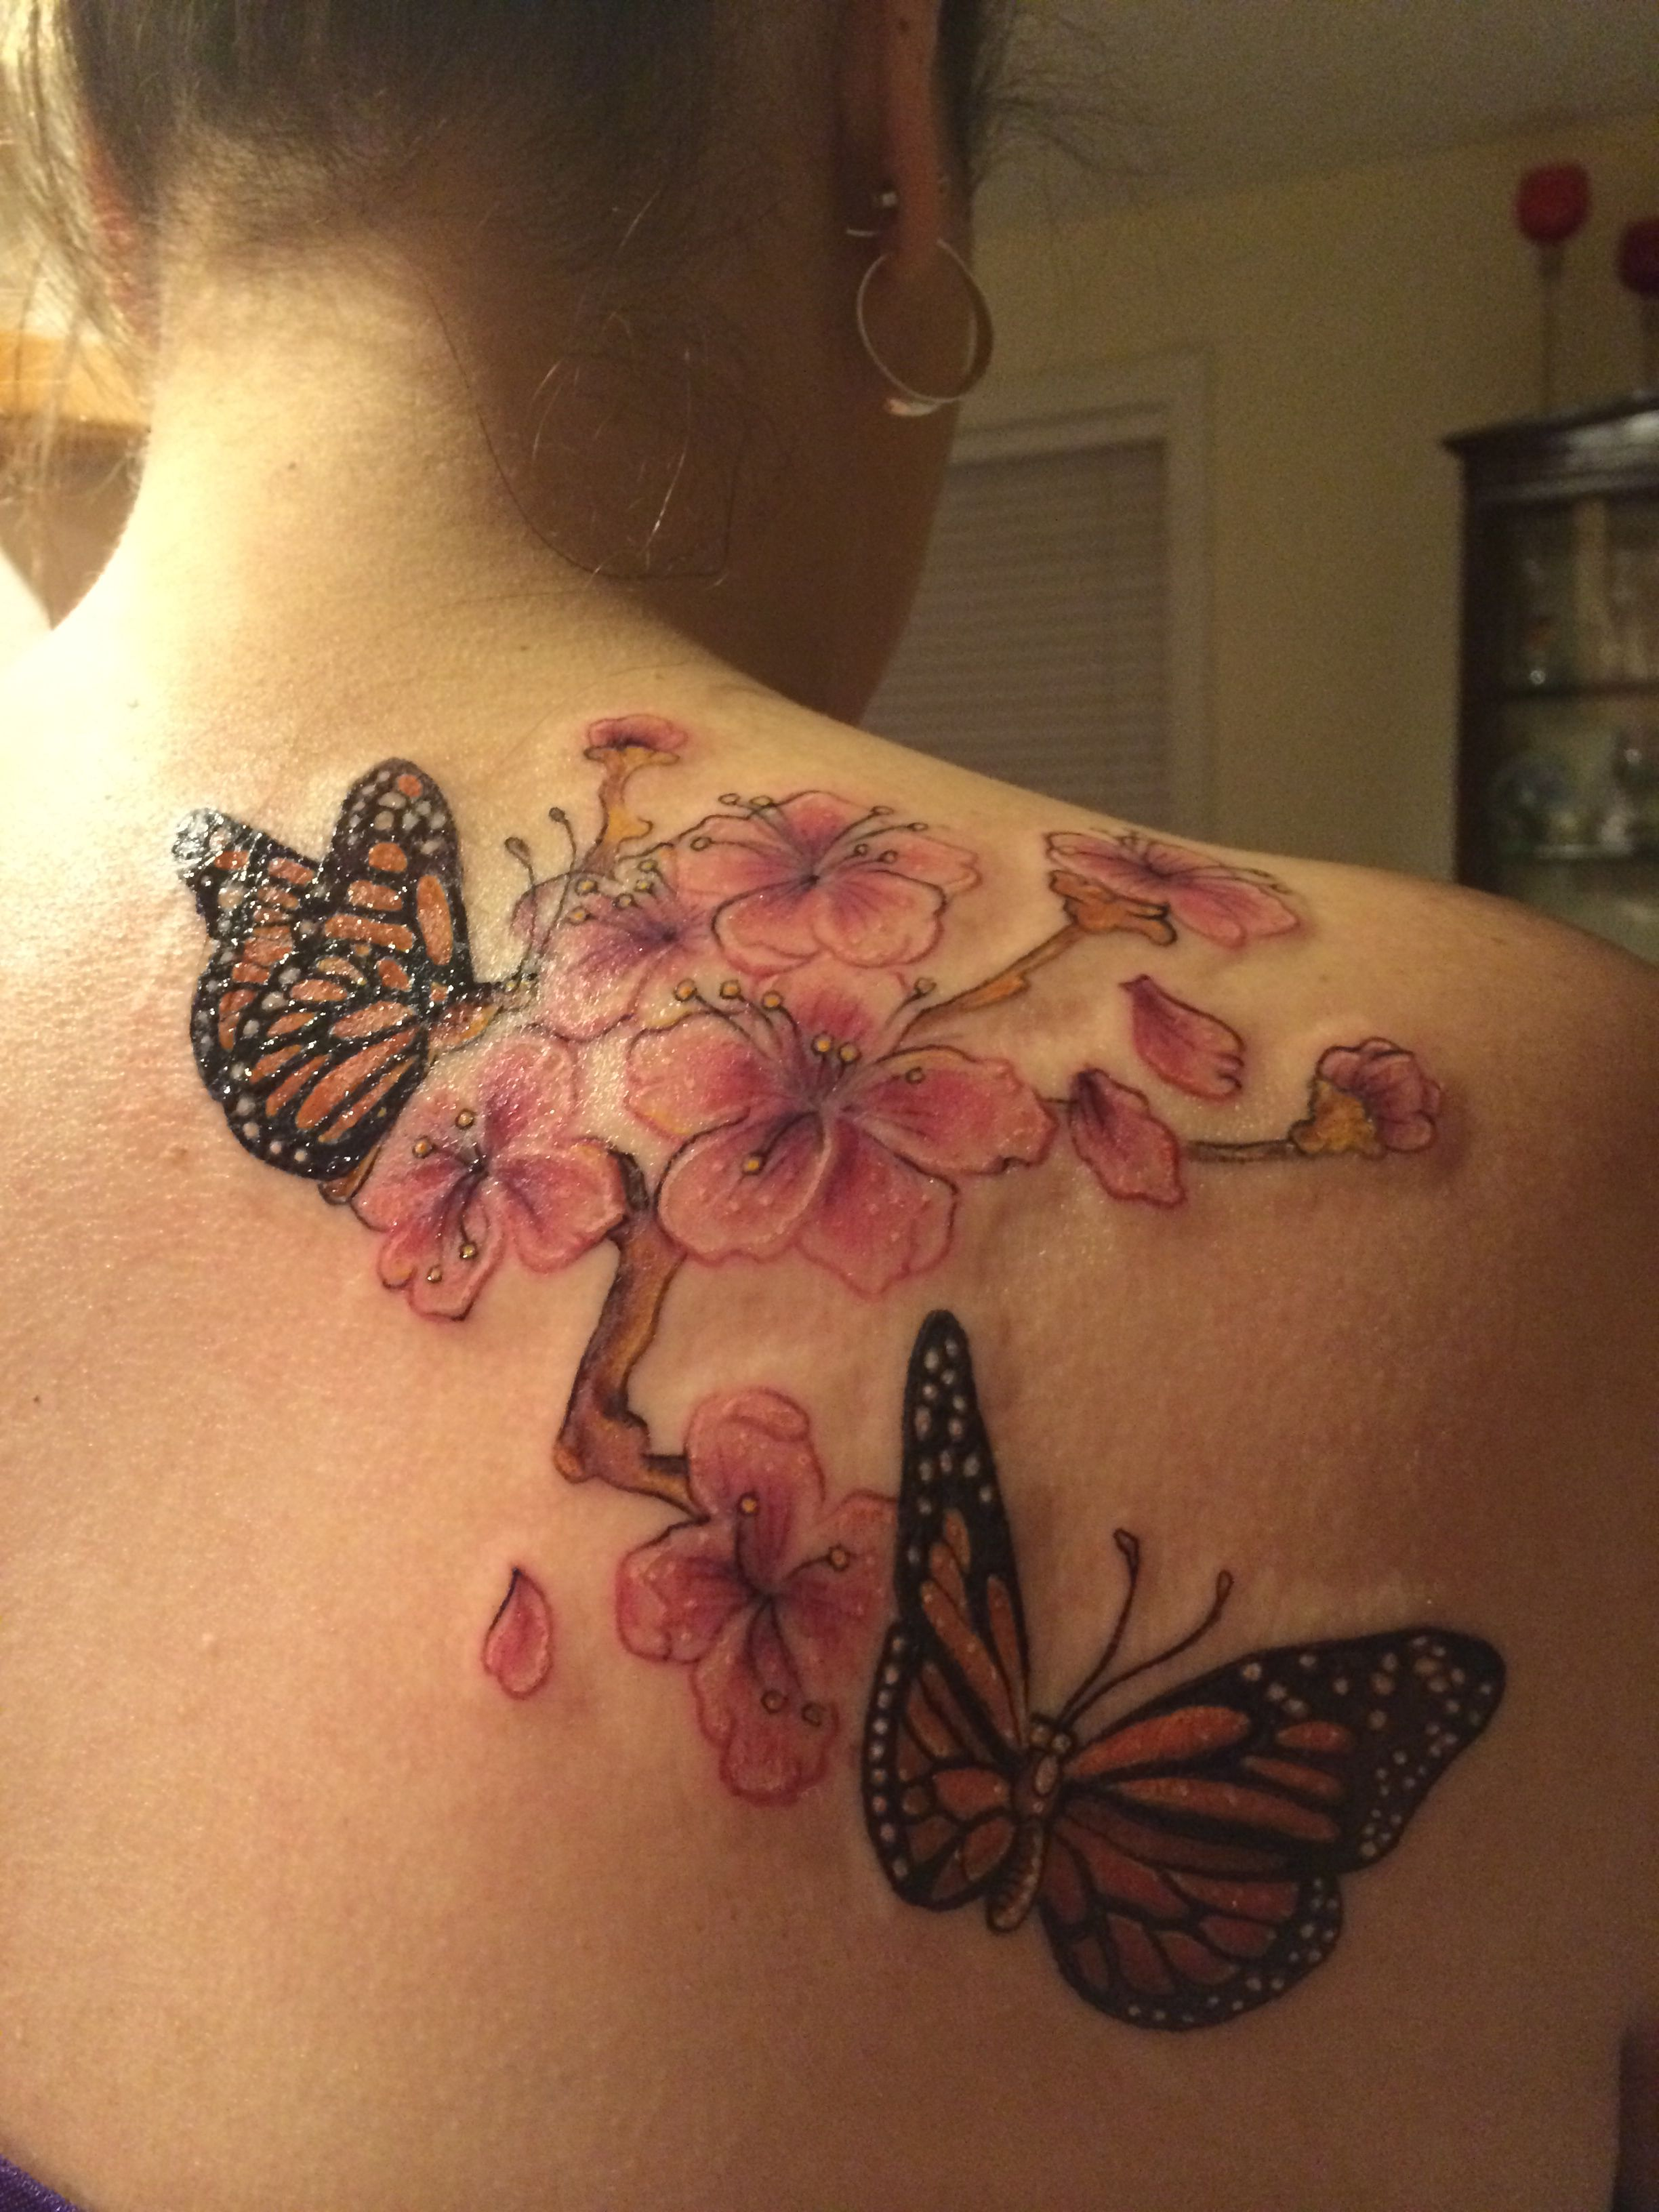 Monarch Butterfly And Cherry Blossoms In Honor Of My Mom Who Passed Away From Leukemia 23 Years Ago The Cherry Blossom Tattoo Blossom Tattoo Butterfly Tattoo